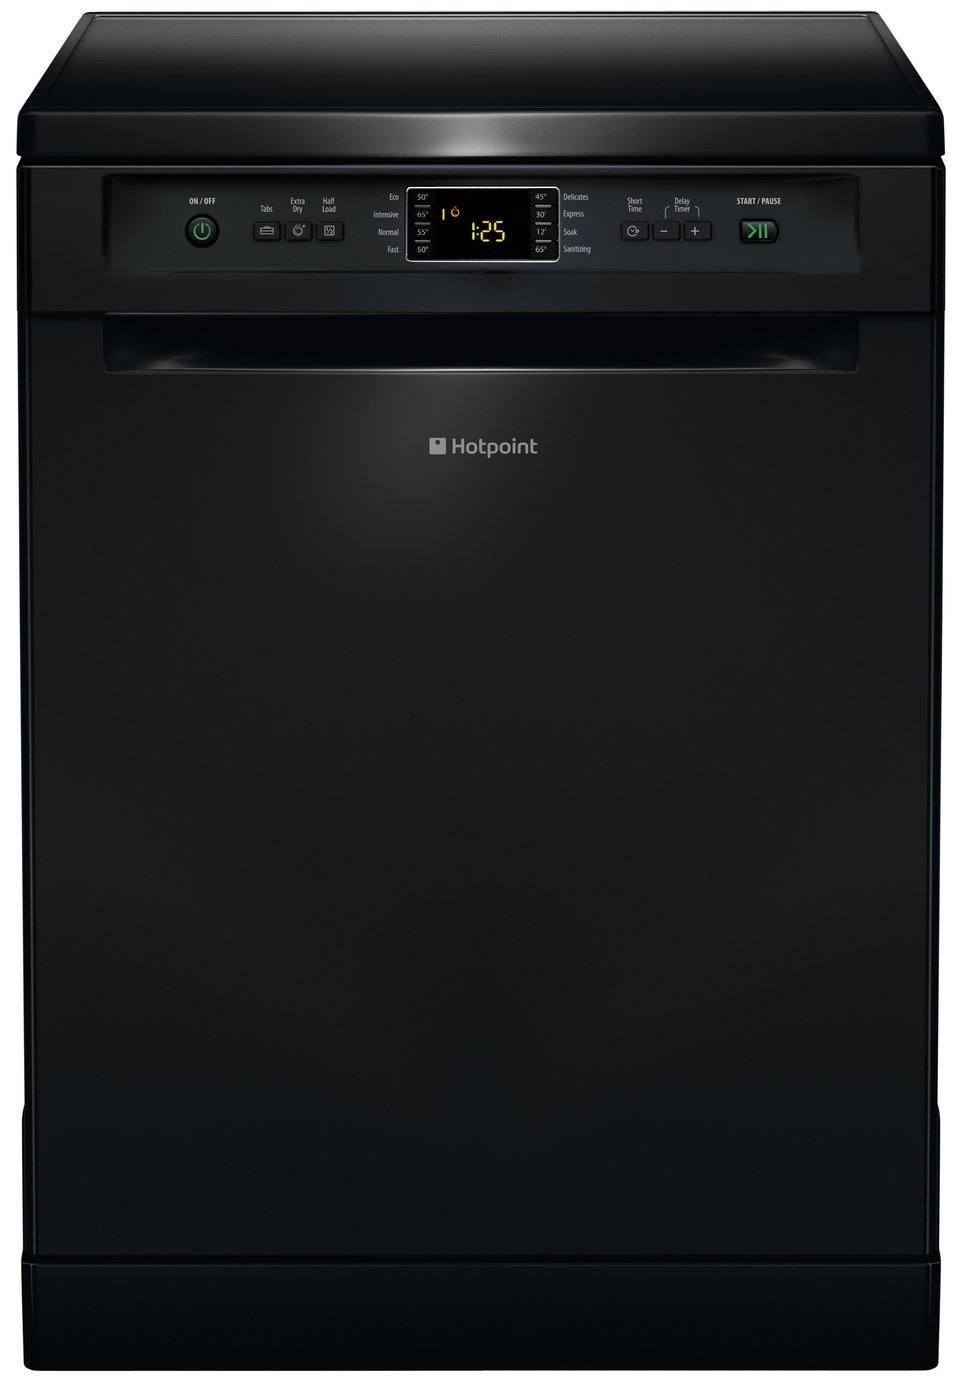 Hotpoint FDFEX11011K Full Size Dishwasher - Black